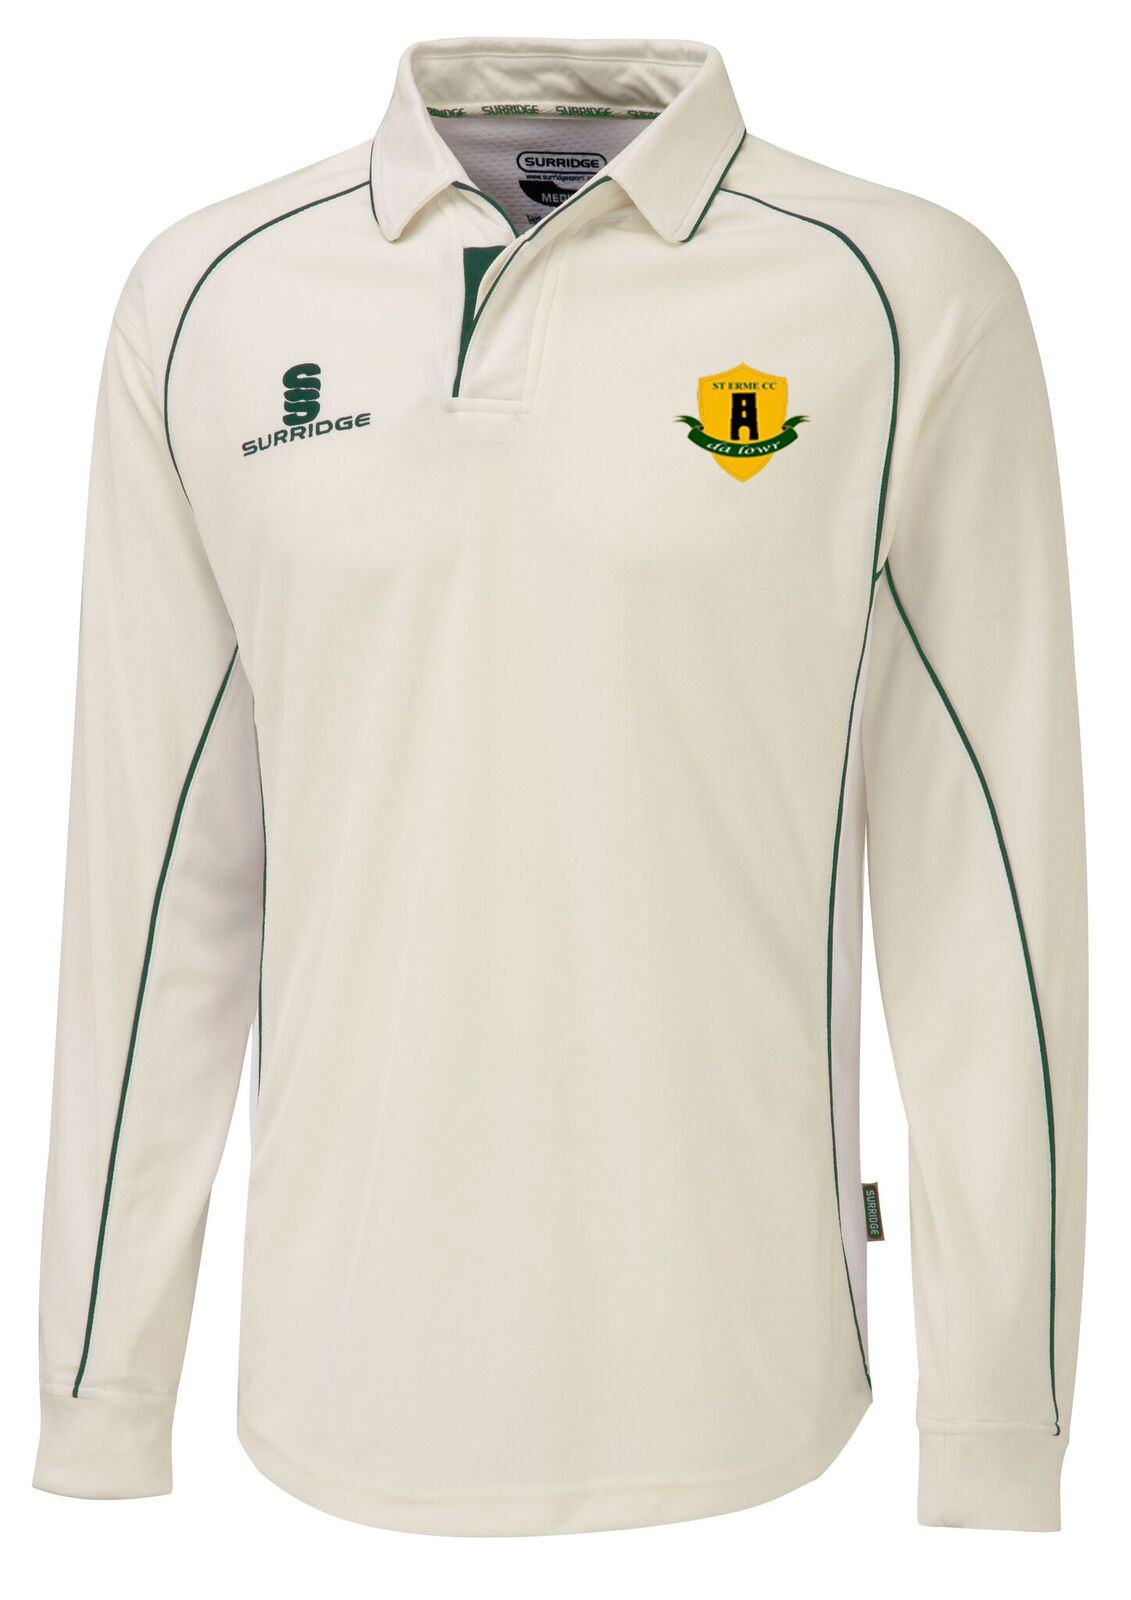 Surridge Long Sleeved Playing Shirt